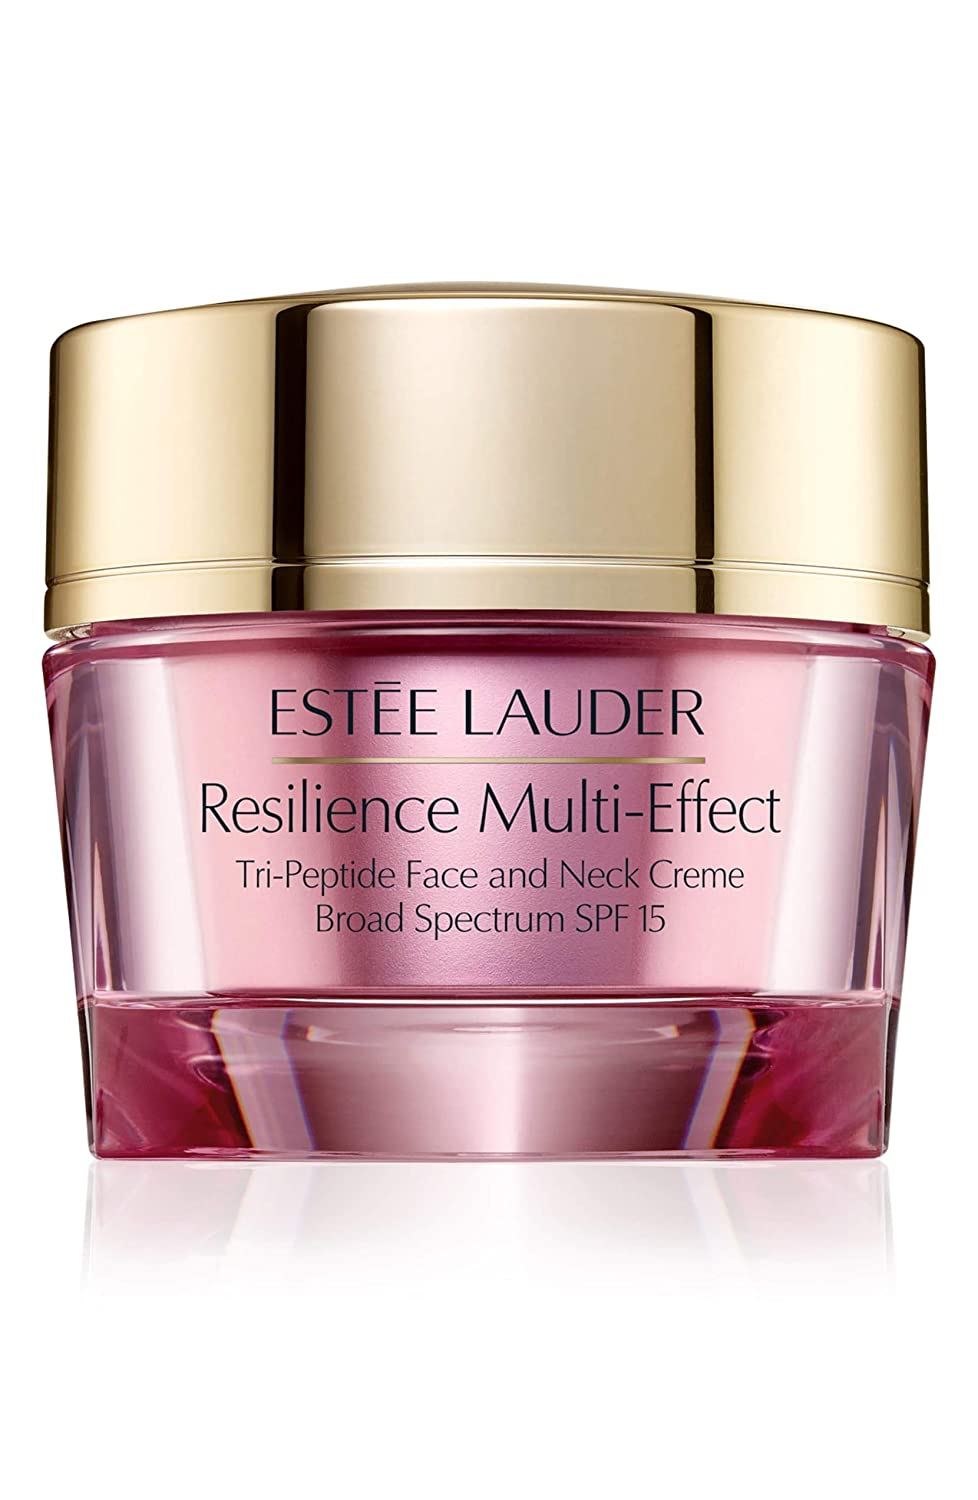 Estee Lauder Resilience Multi-Effect Tri-Peptide Face and Neck Creme for mature skin